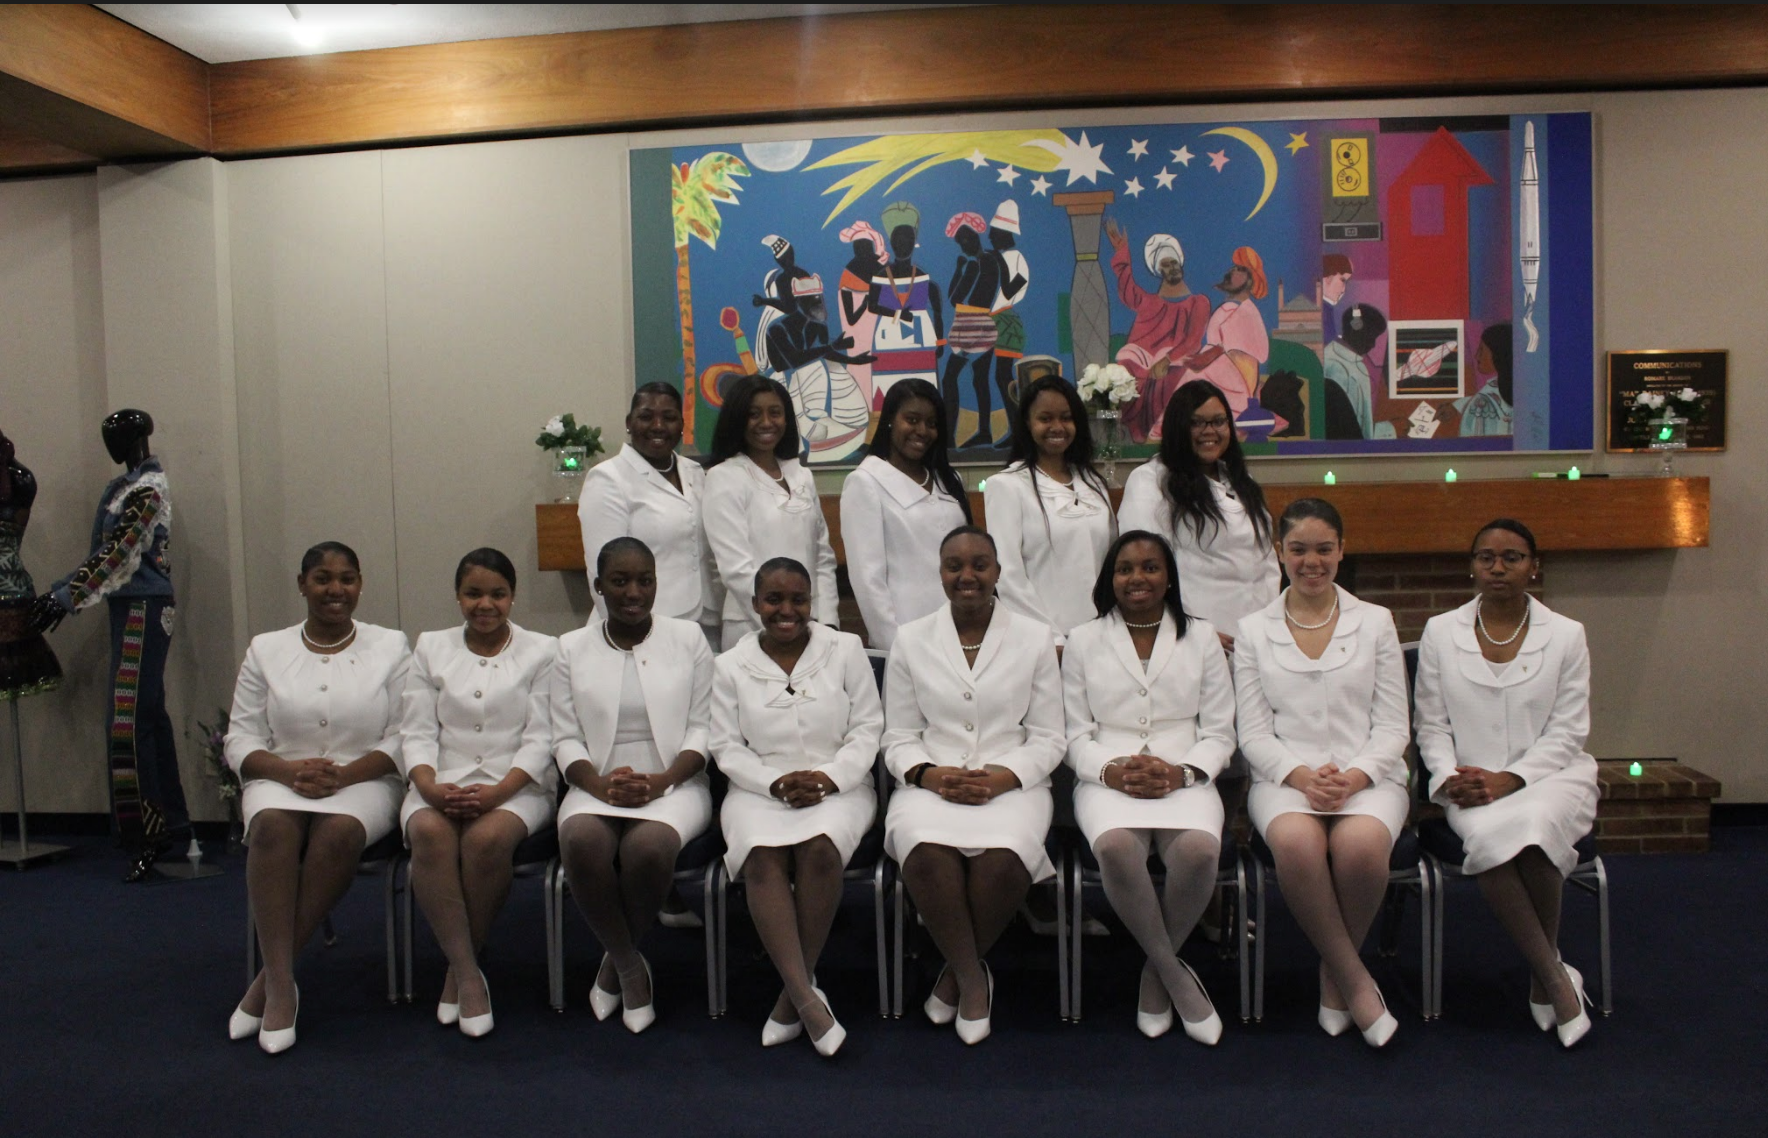 April 5th, 2018  (Back Row): Charrae Preister, Ariel Berry, Ninti Alfred, Cheryl Denise Dedmon, Dophiadie Pierre  (Front Row): Torin A. Collins, Jayda Jackson, Dominique Anoh, Elahé Williams, Zaria J. Huggins, ShirBriya Fletcher, Mykela DeVille, Victoria A. Russell